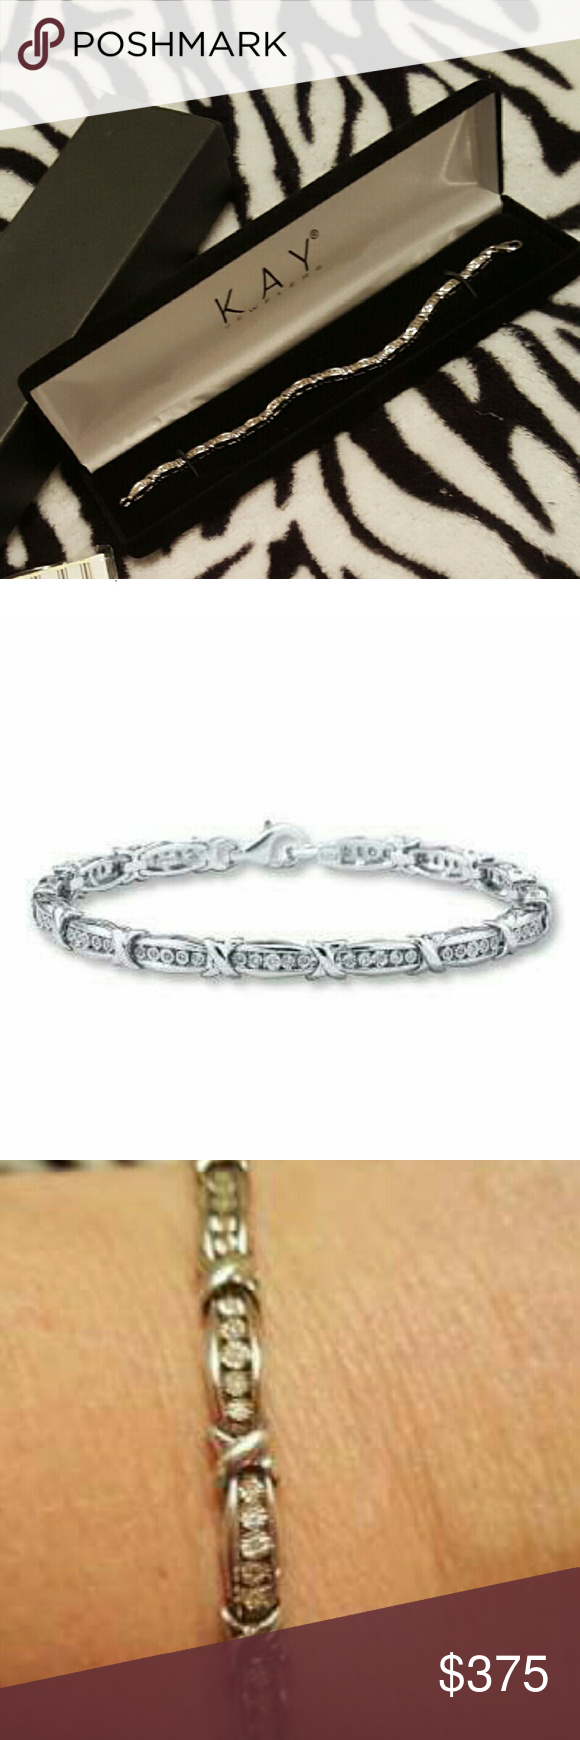 """✖Key Jewelry's✖Diamond Tennis Bracelet✖ Key Jewelry's Diamond Bracelet Sterling Silver. This braclet is brand new * never worn.  Comes with originally receipt, box also a full warranty.  Description: This dazzling piece in Silver and Diamond is a rare find. ❌Brilliant round diamonds sparkle between """"kisses"""" of sterling silver in this memorable bracelet for her. The bracelet, with a total diamond weight of 1/4 carat, is secured with a lobster clasp. Diamond Total Carat Weight may range from…"""